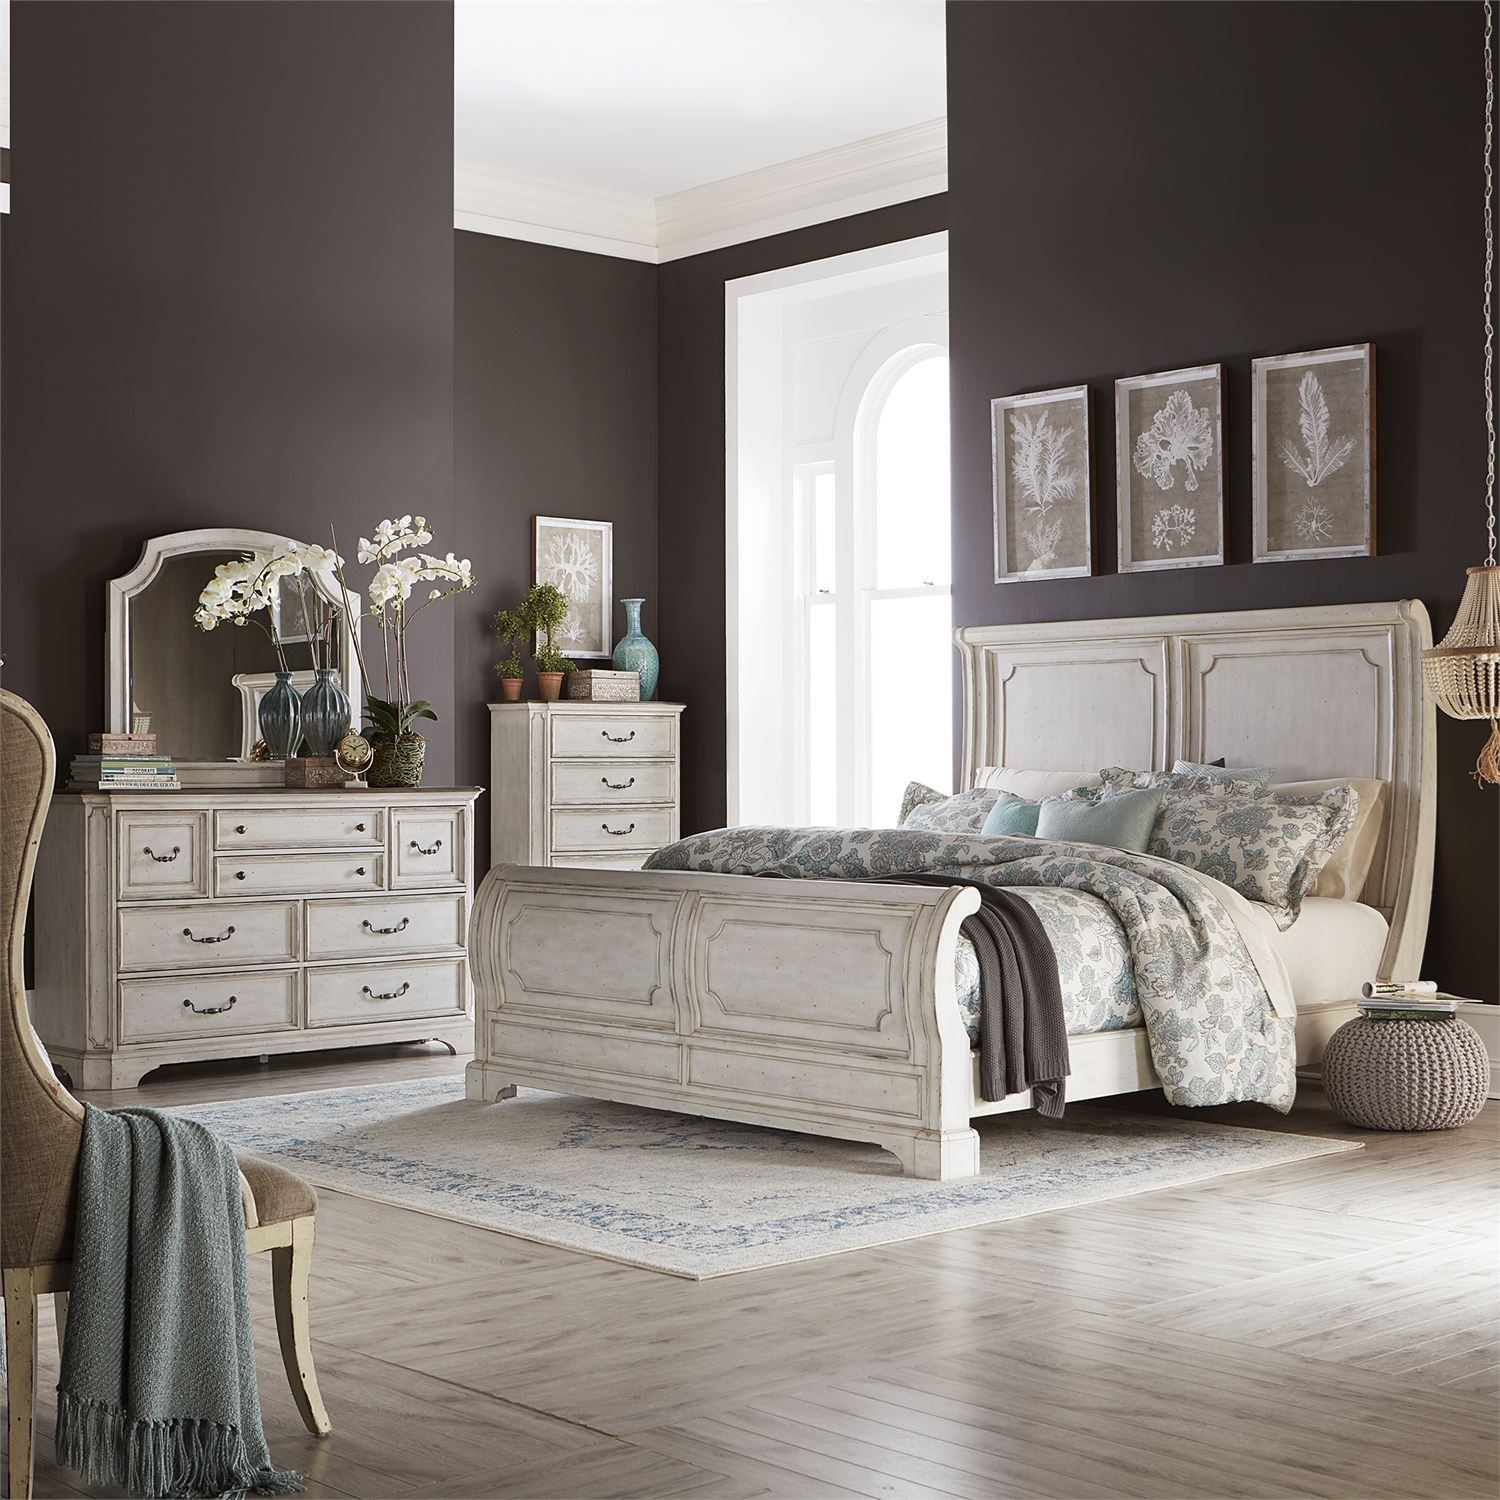 Abbey Road Queen Bedroom Group by Liberty Furniture at Steger's Furniture